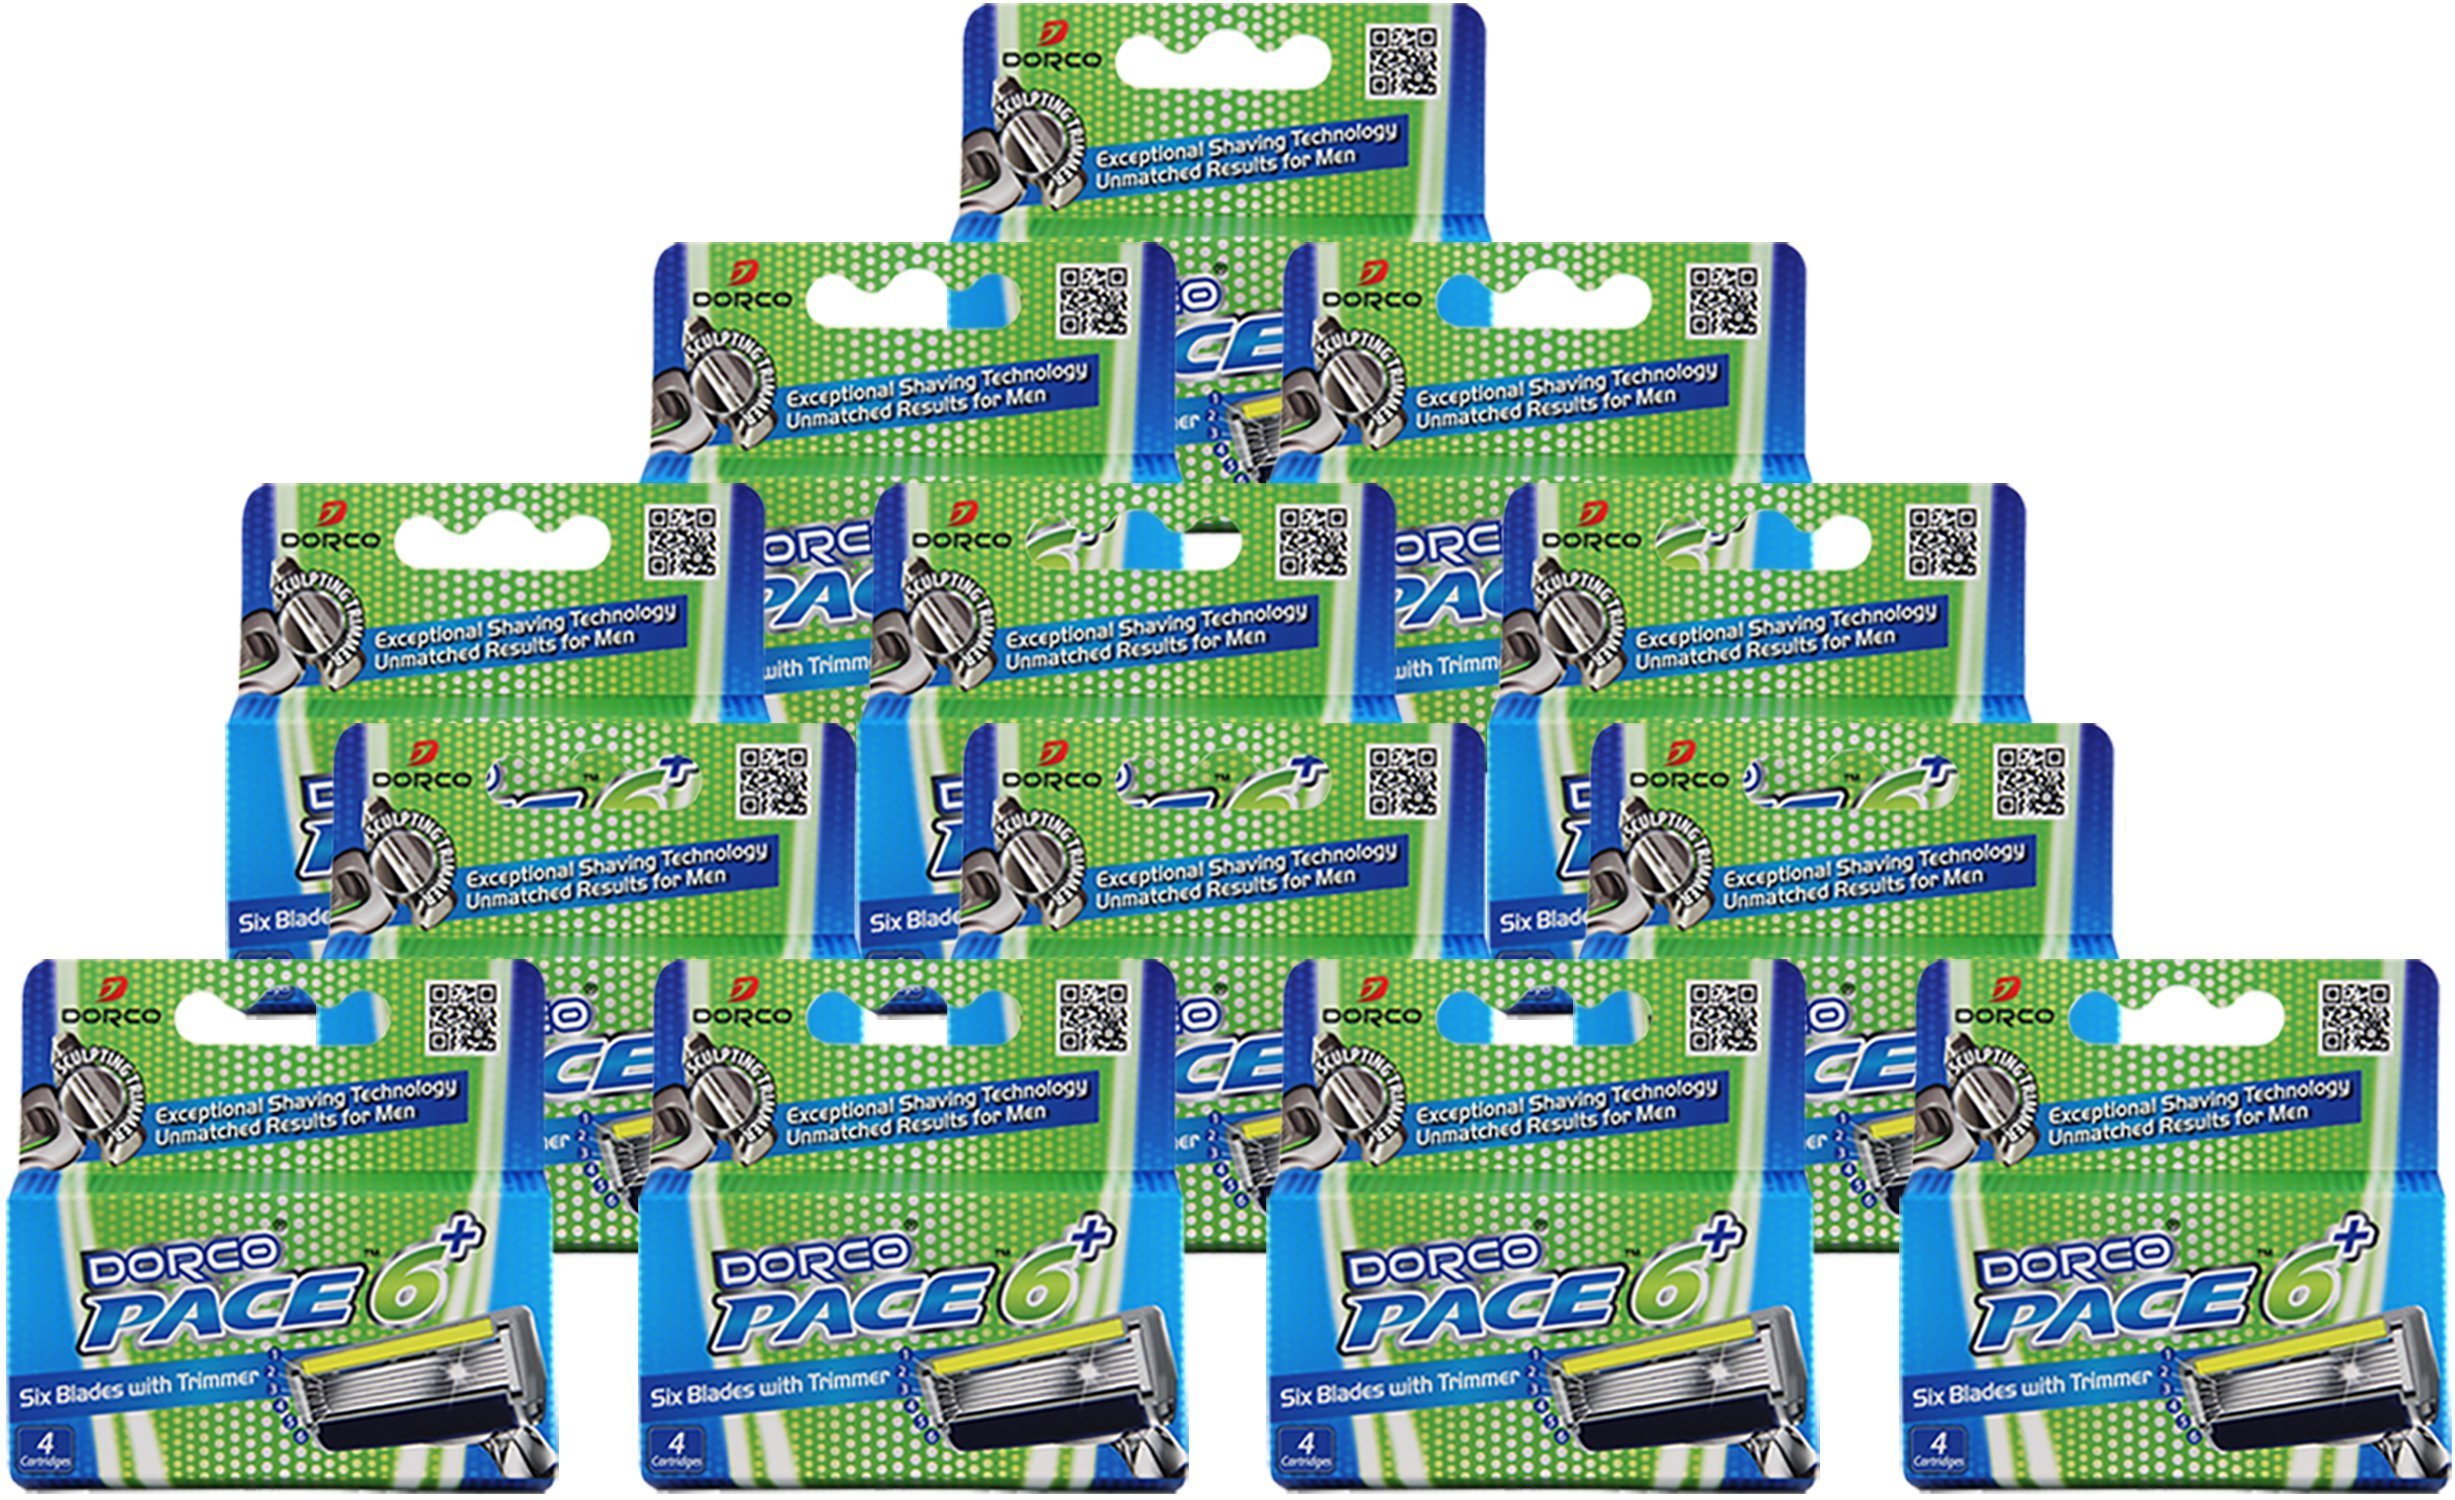 Dorco Pace 6 Plus- Six Blade Razor System with Trimmer - 52 Pack Refill (No Handle)